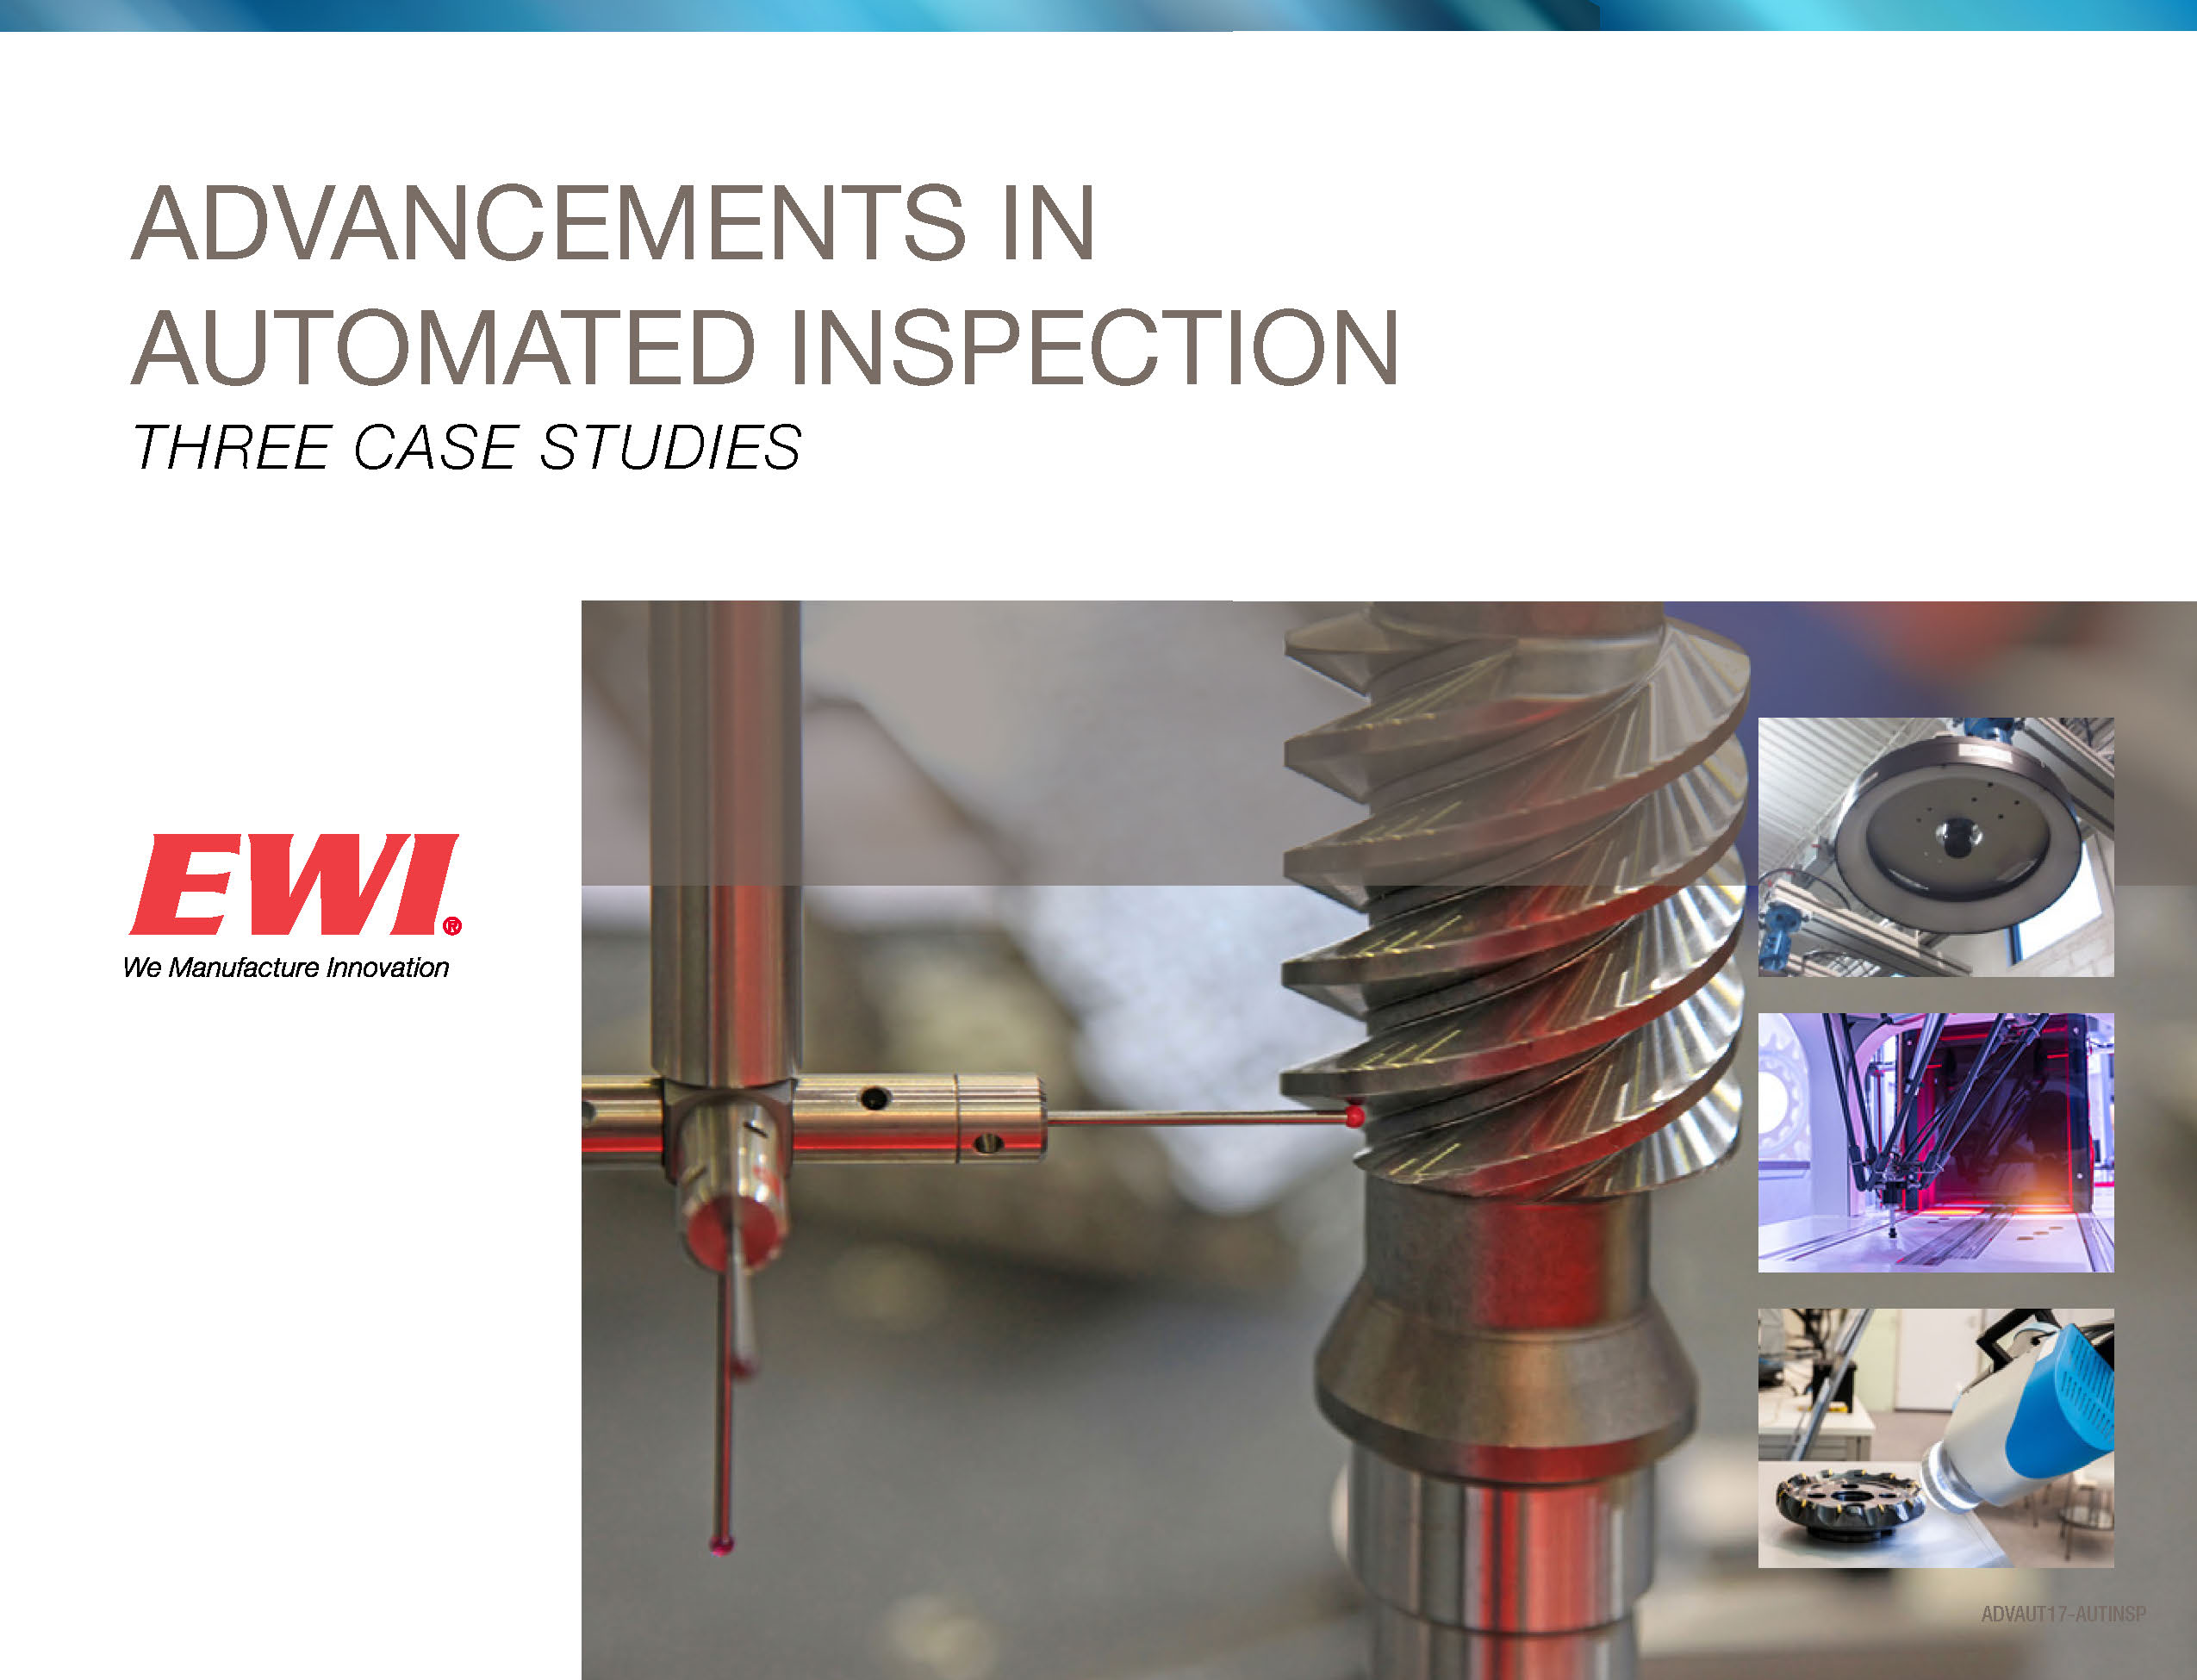 AUTOMATED INSPECTION FOR GREATER MANUFACTURING PRODUCTIVITY_Page_1